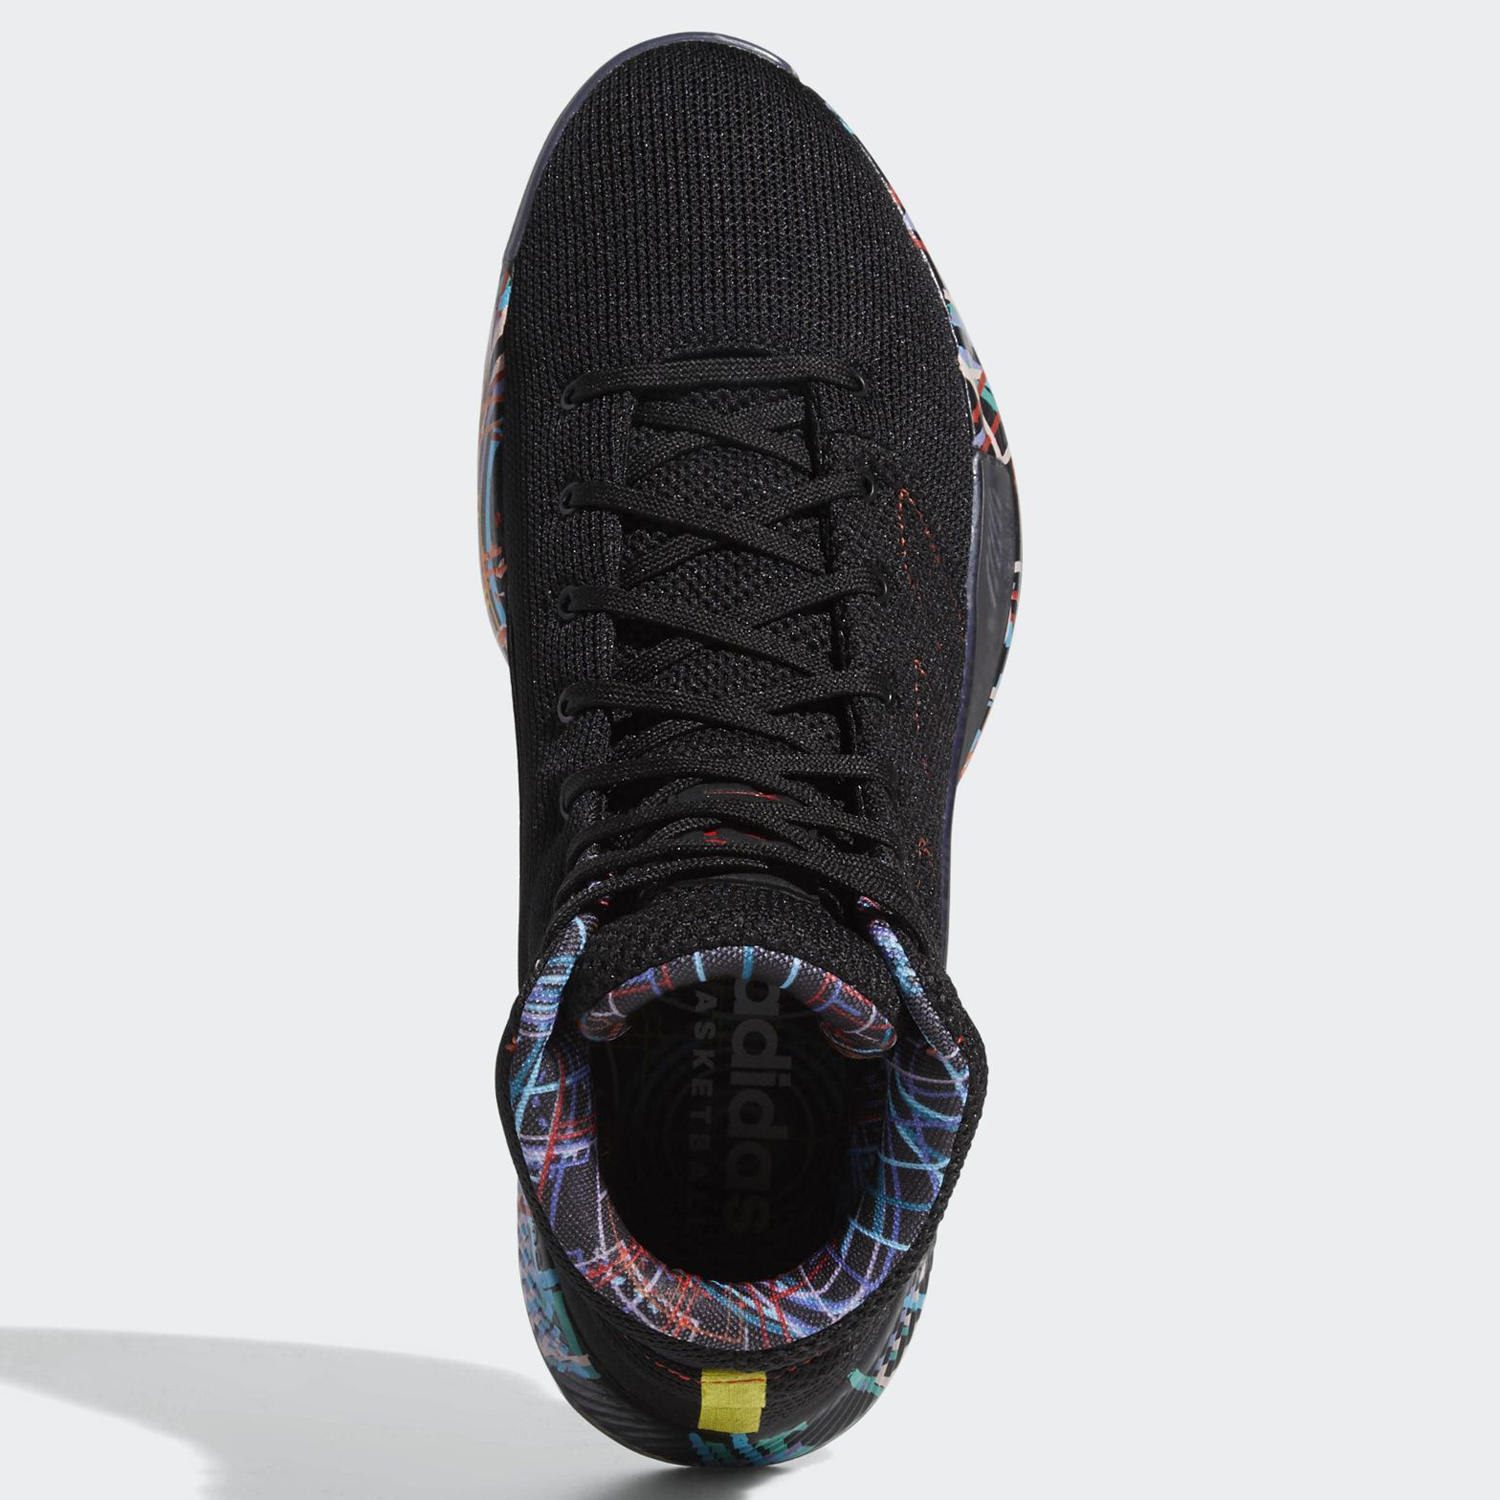 0e55d71f0f19 adidas-Pro-Bounce-Madness-2019-7 - WearTesters